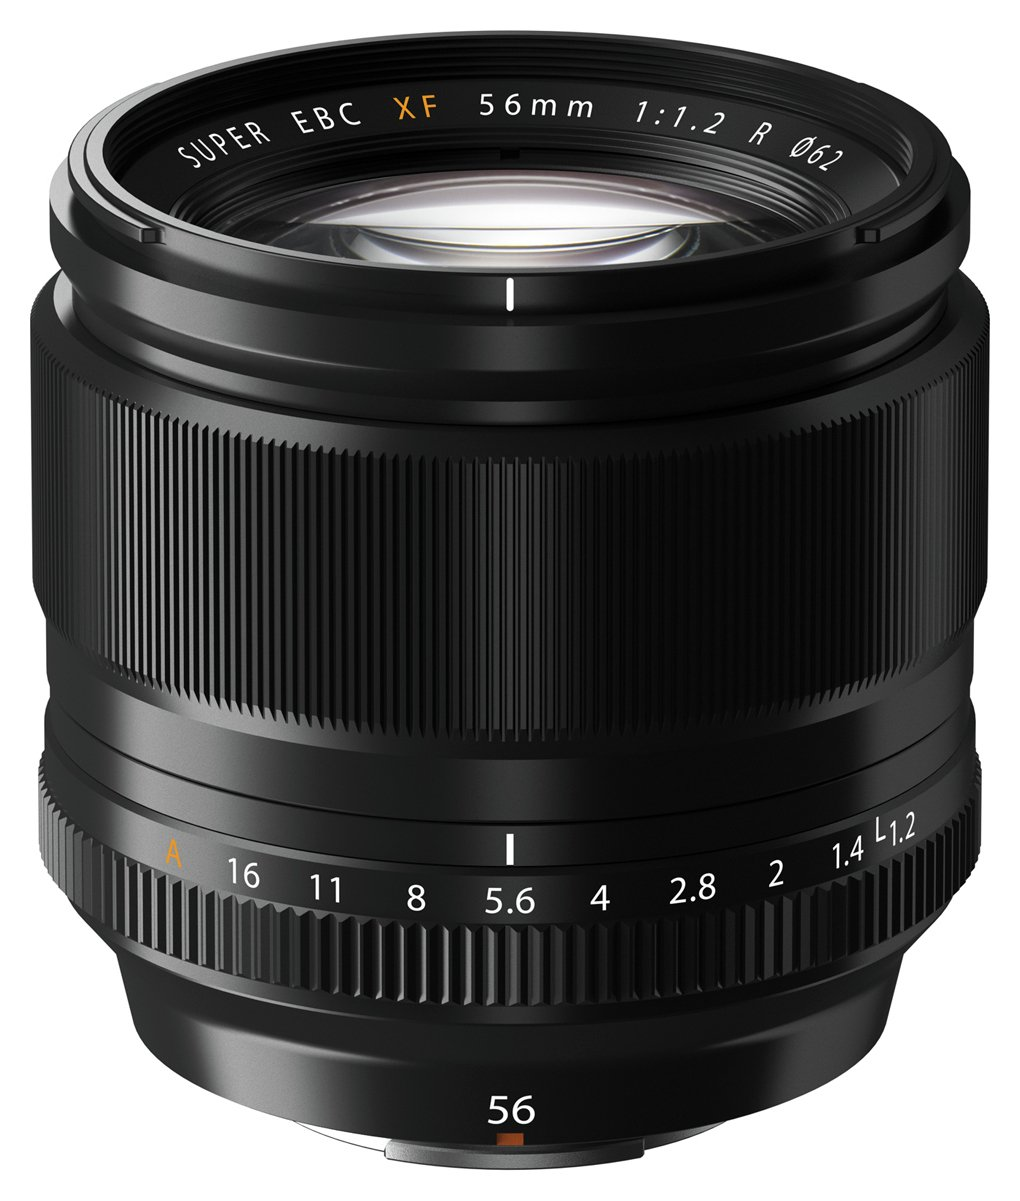 Image of Fujifilm 56mm XF Lens.